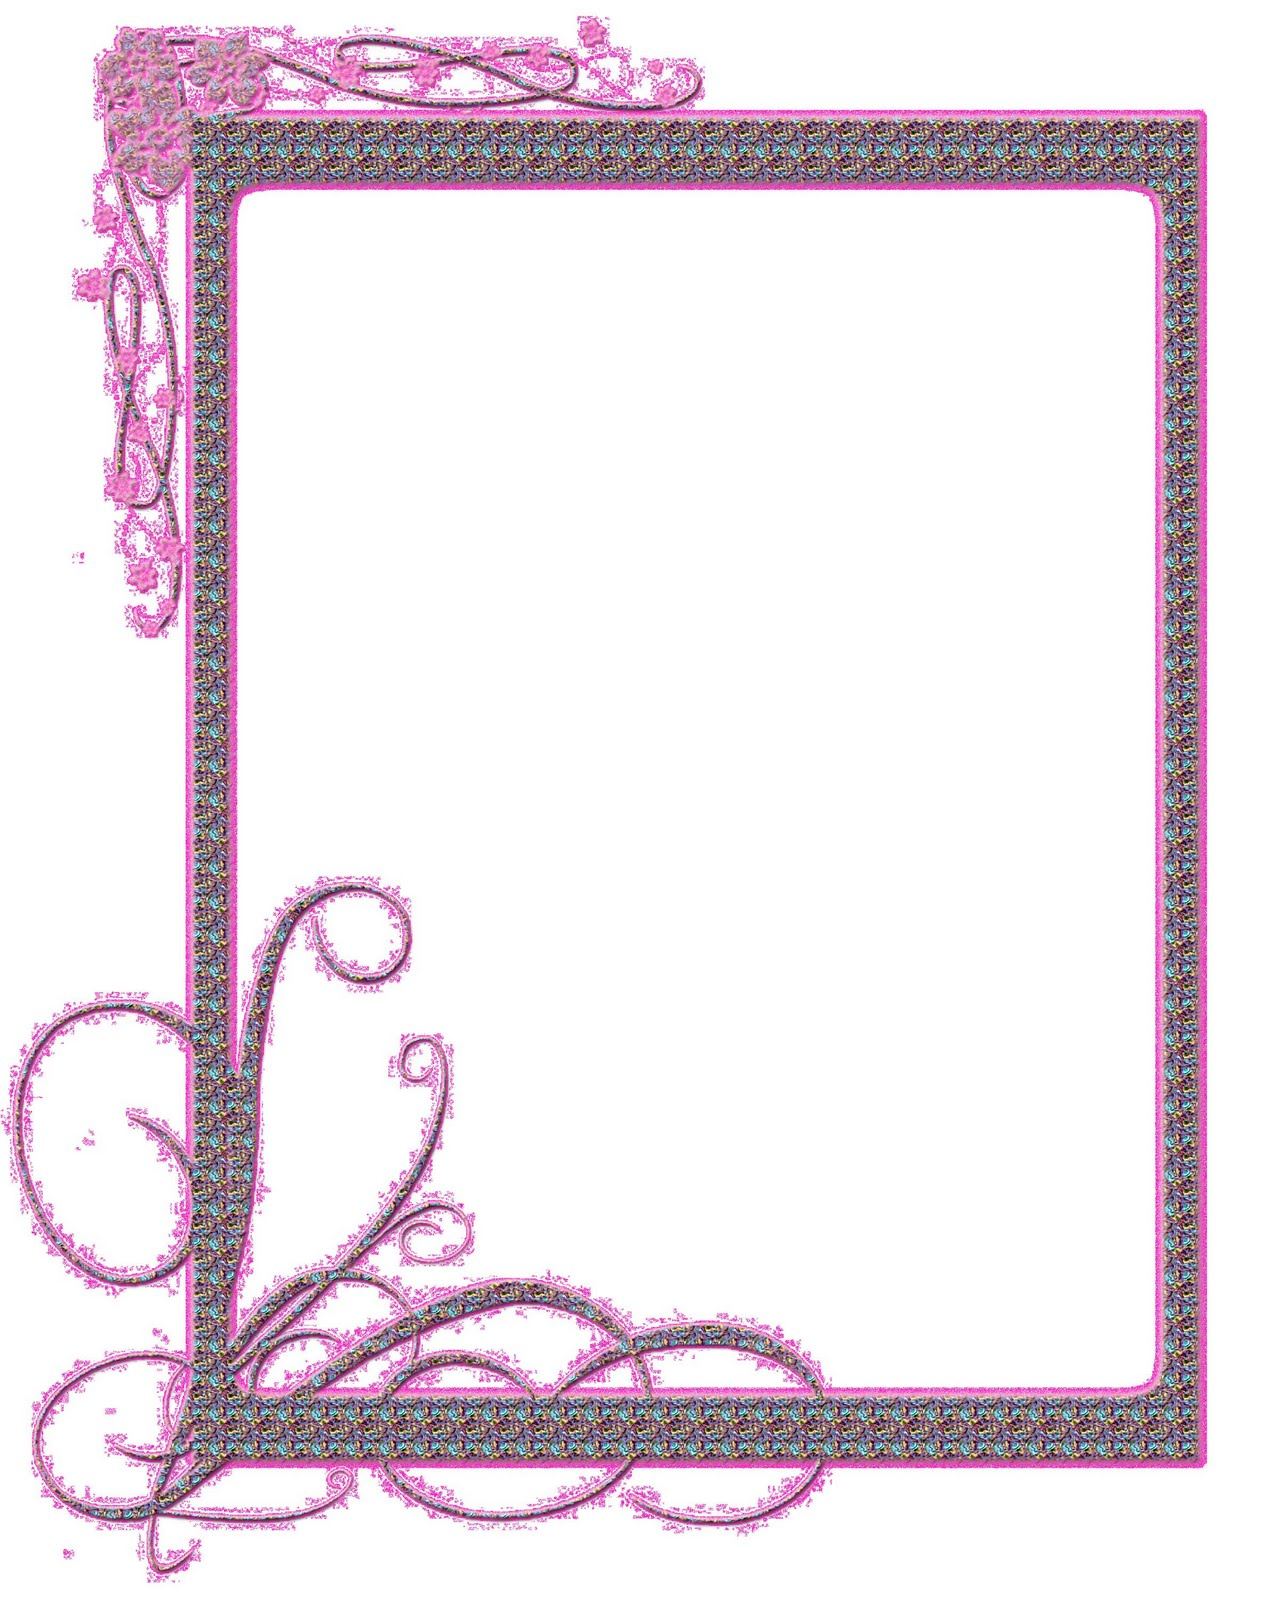 Free design cool photo frame for Cool picture frame designs